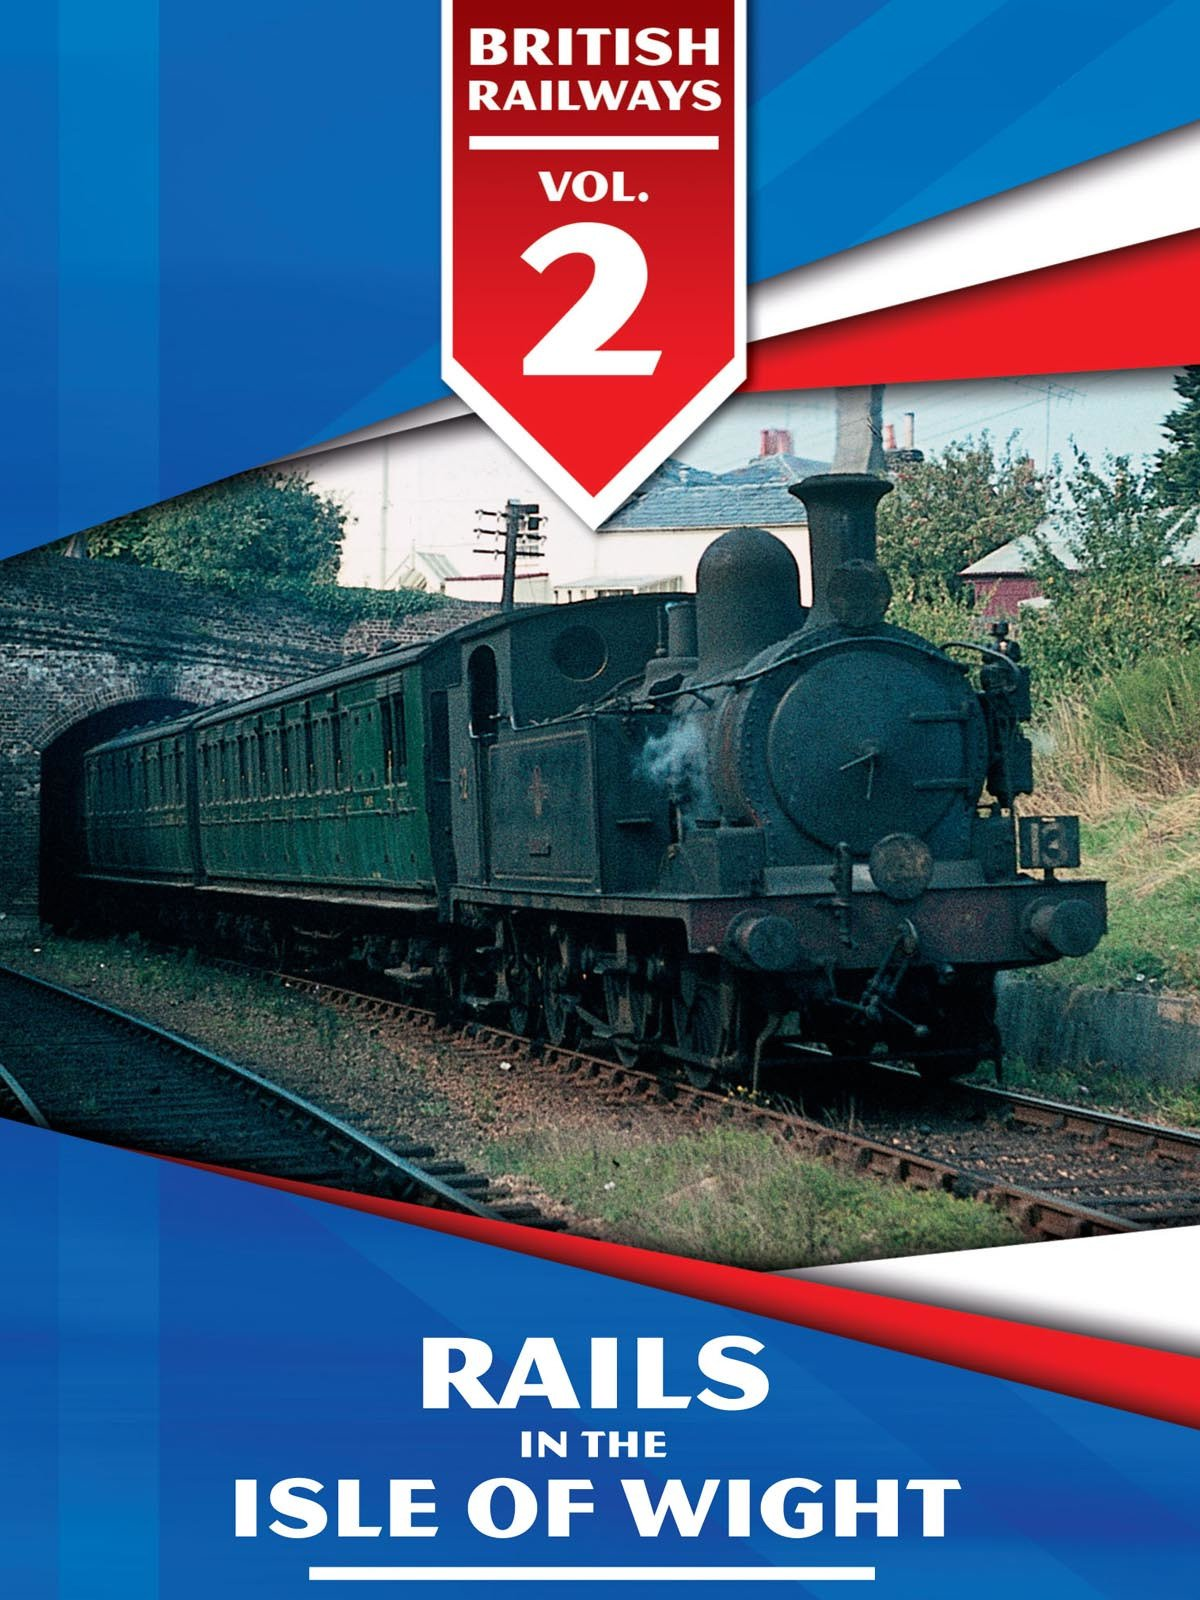 British Railways Volume 2: Rails in the Isle of Wight